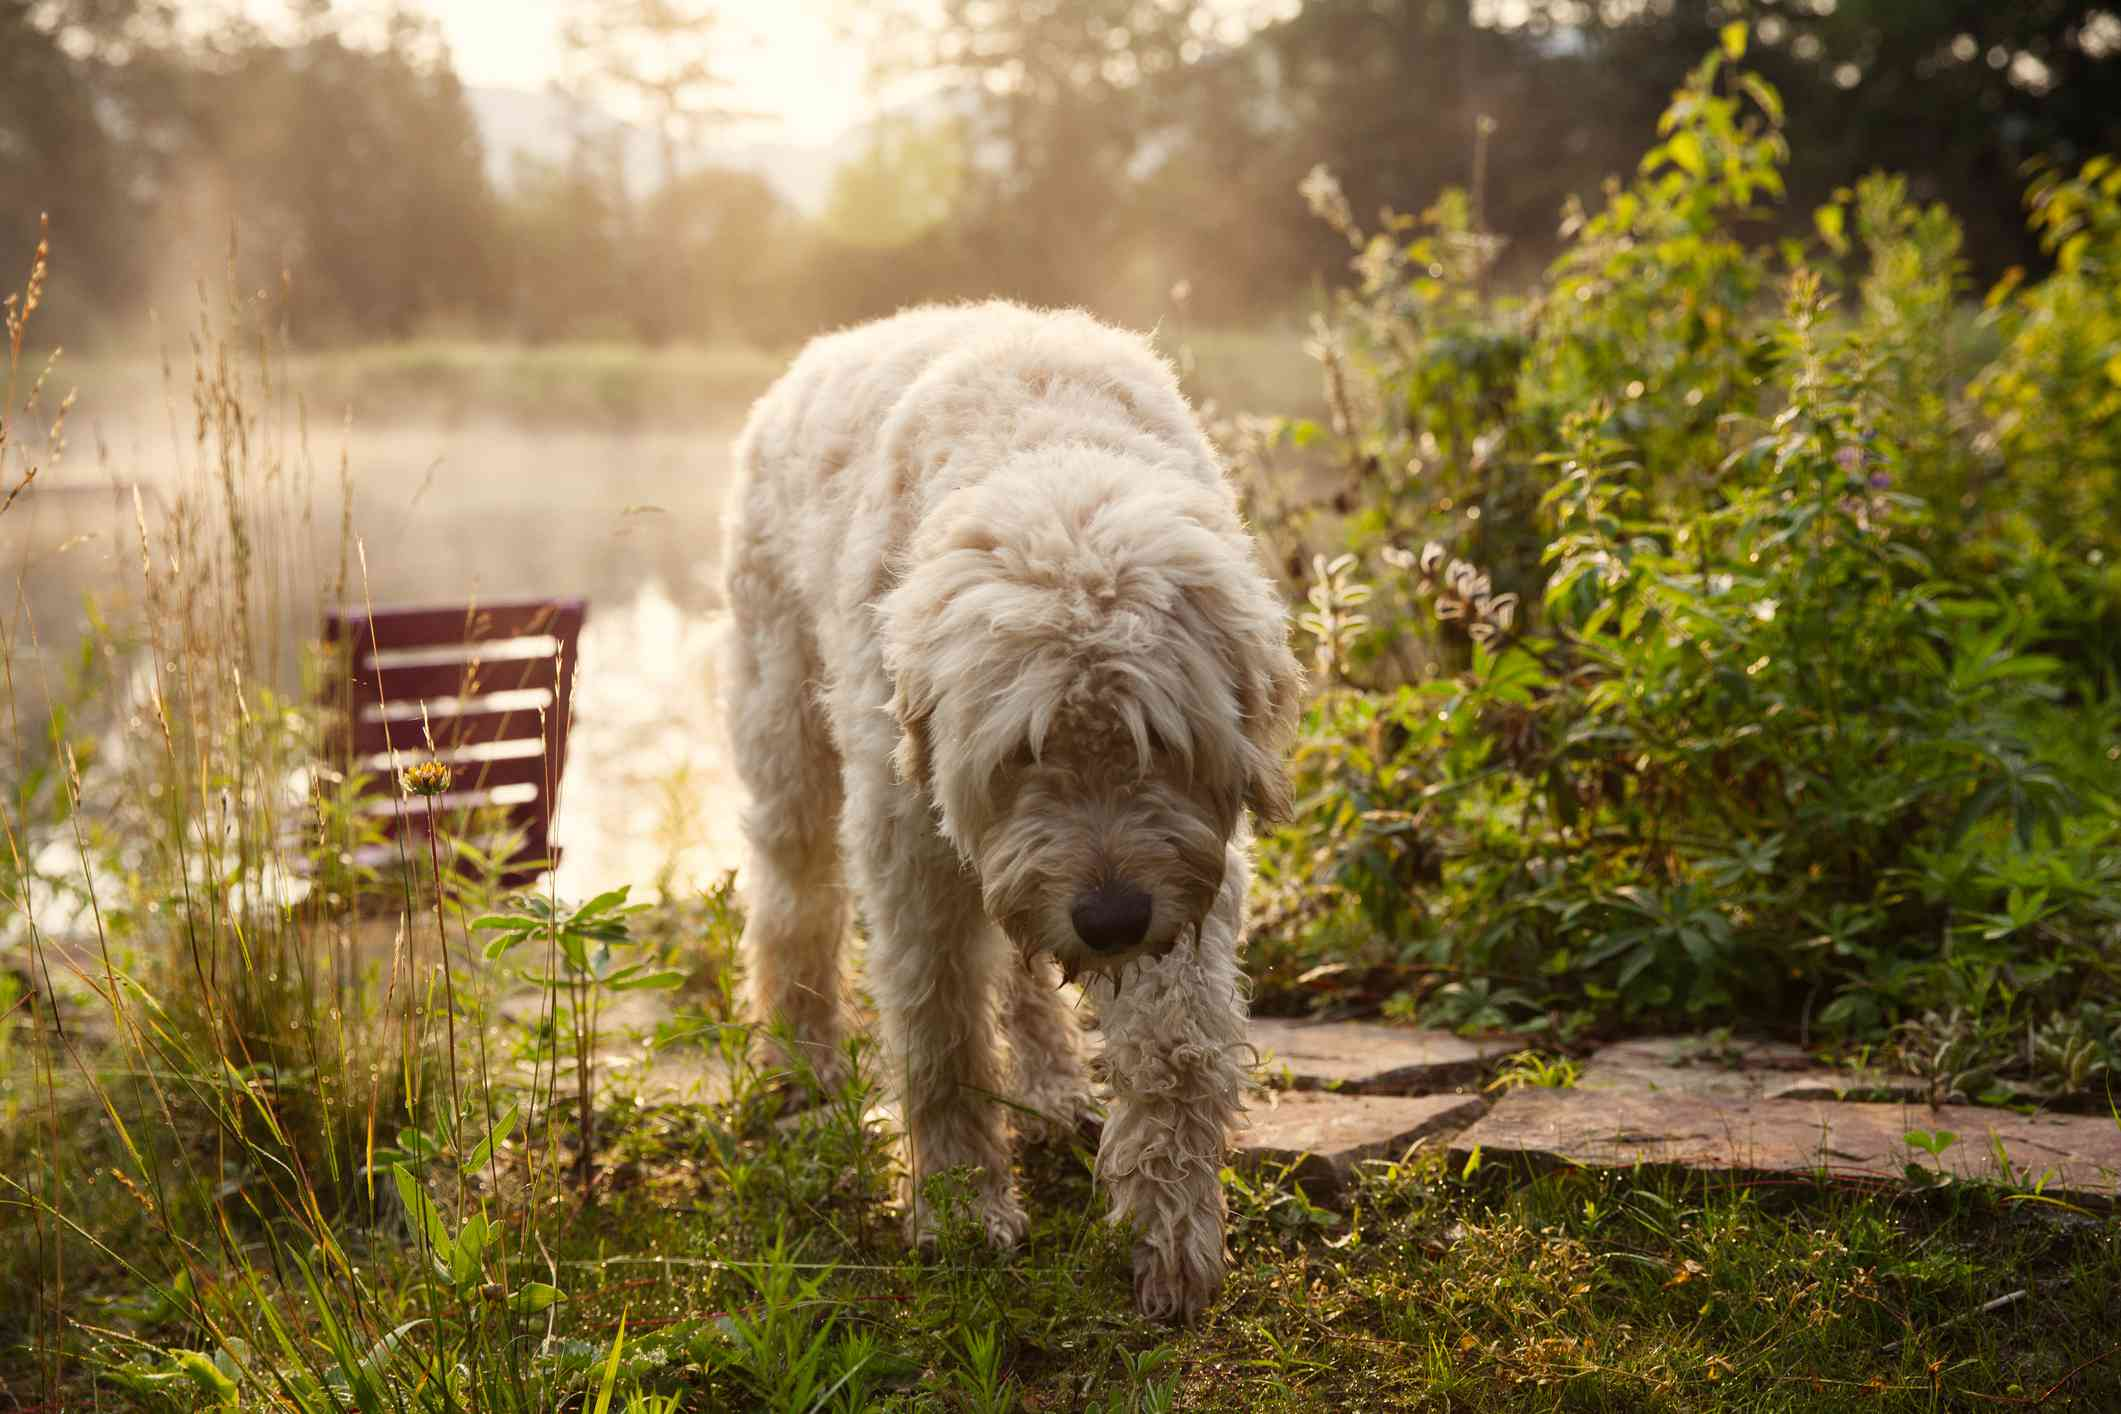 A shaggy blond dog standing in front of a park bench.